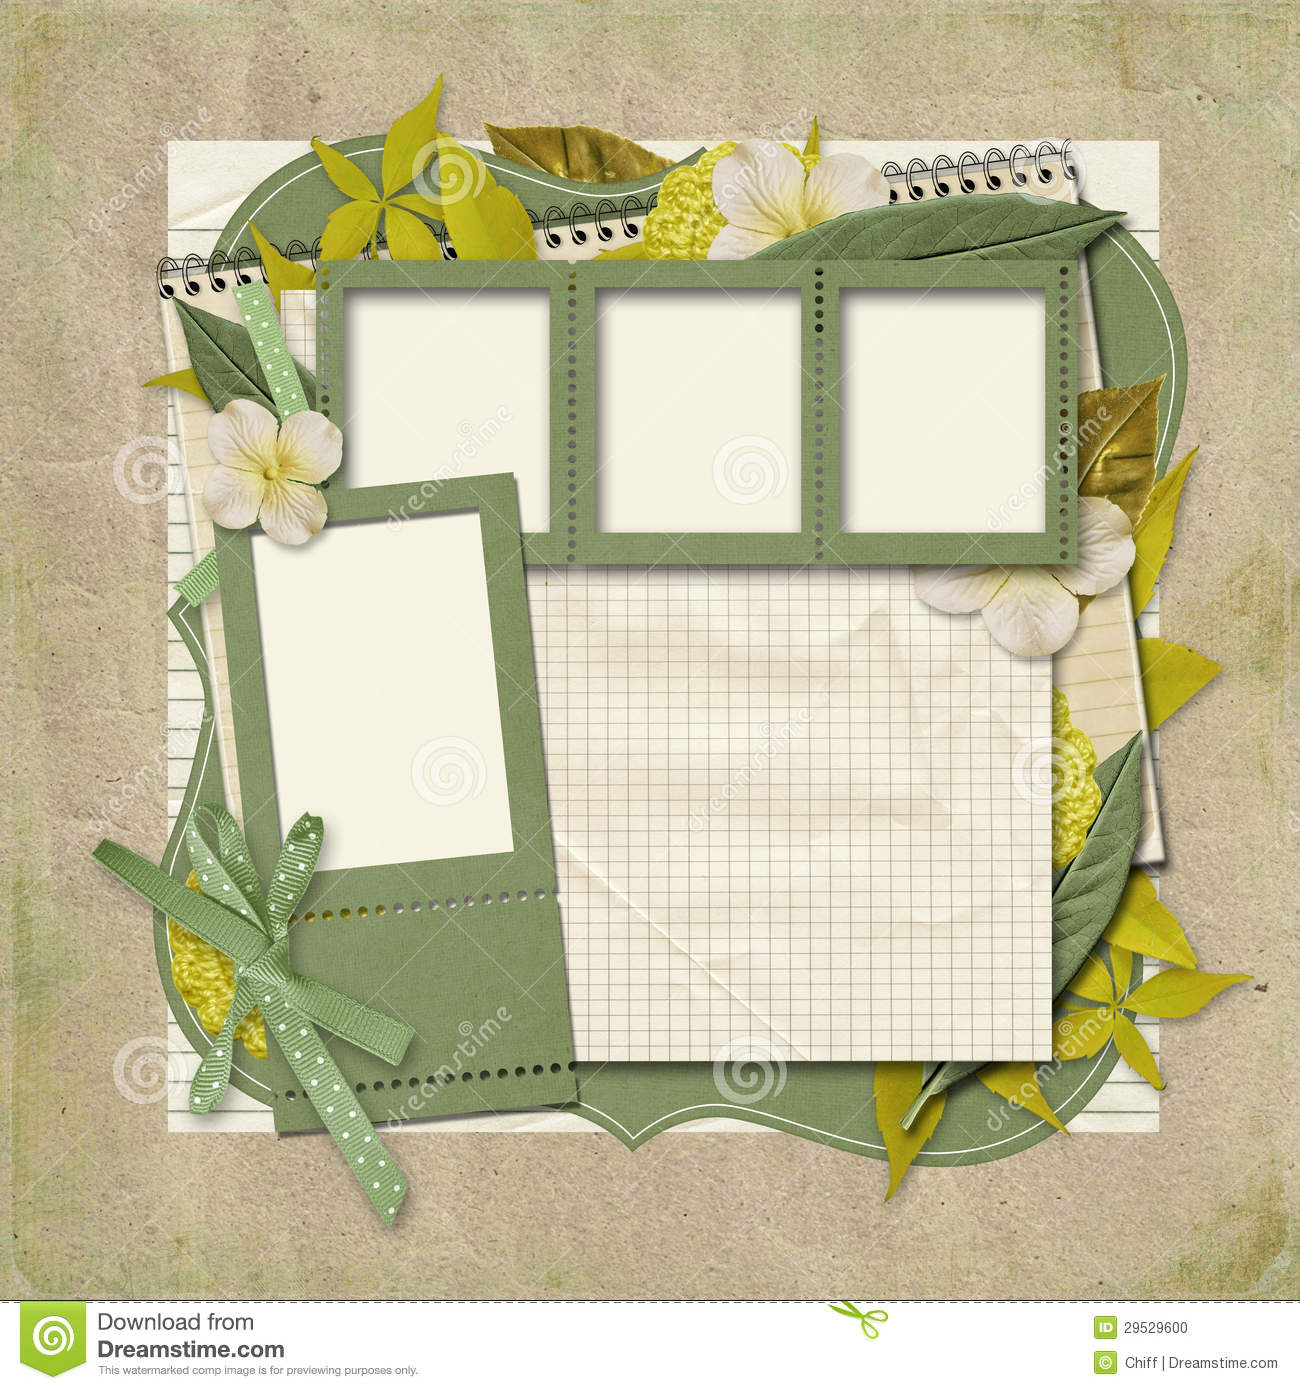 Blank Scrapbook Pages Akbaeenw